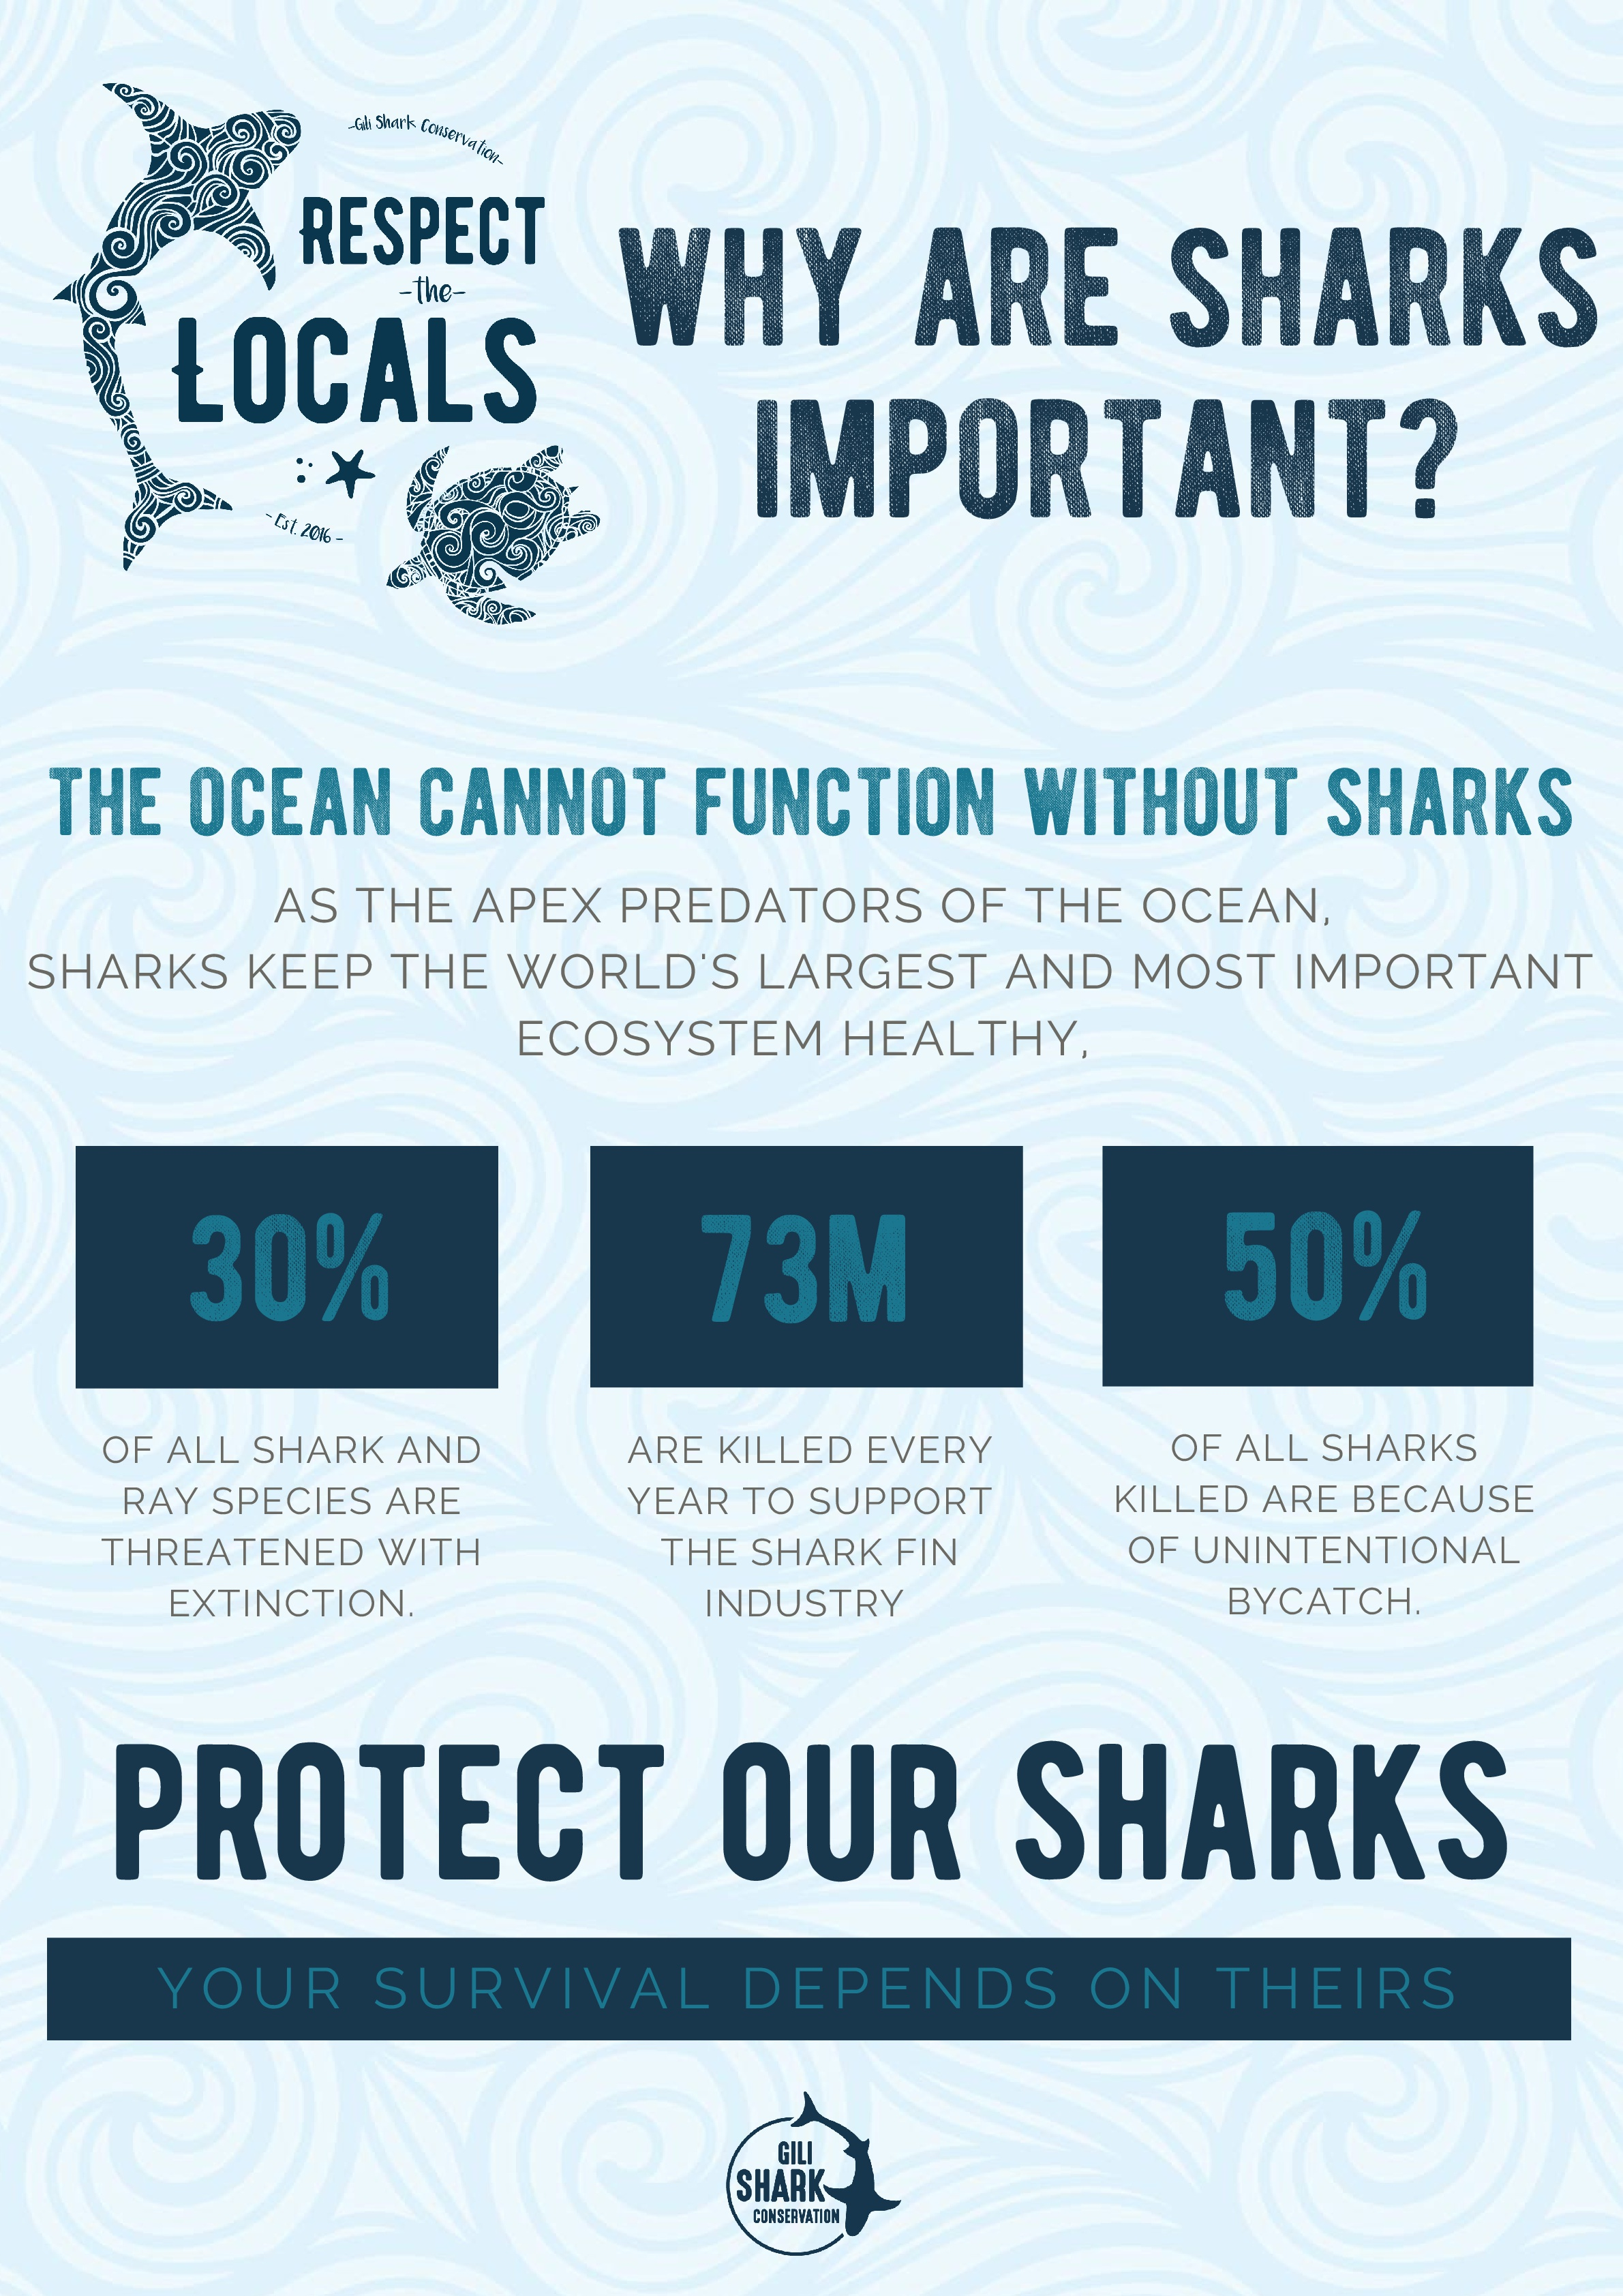 Why-Are-Sharks-Important-free-infographic-Gili-Shark-Conservation